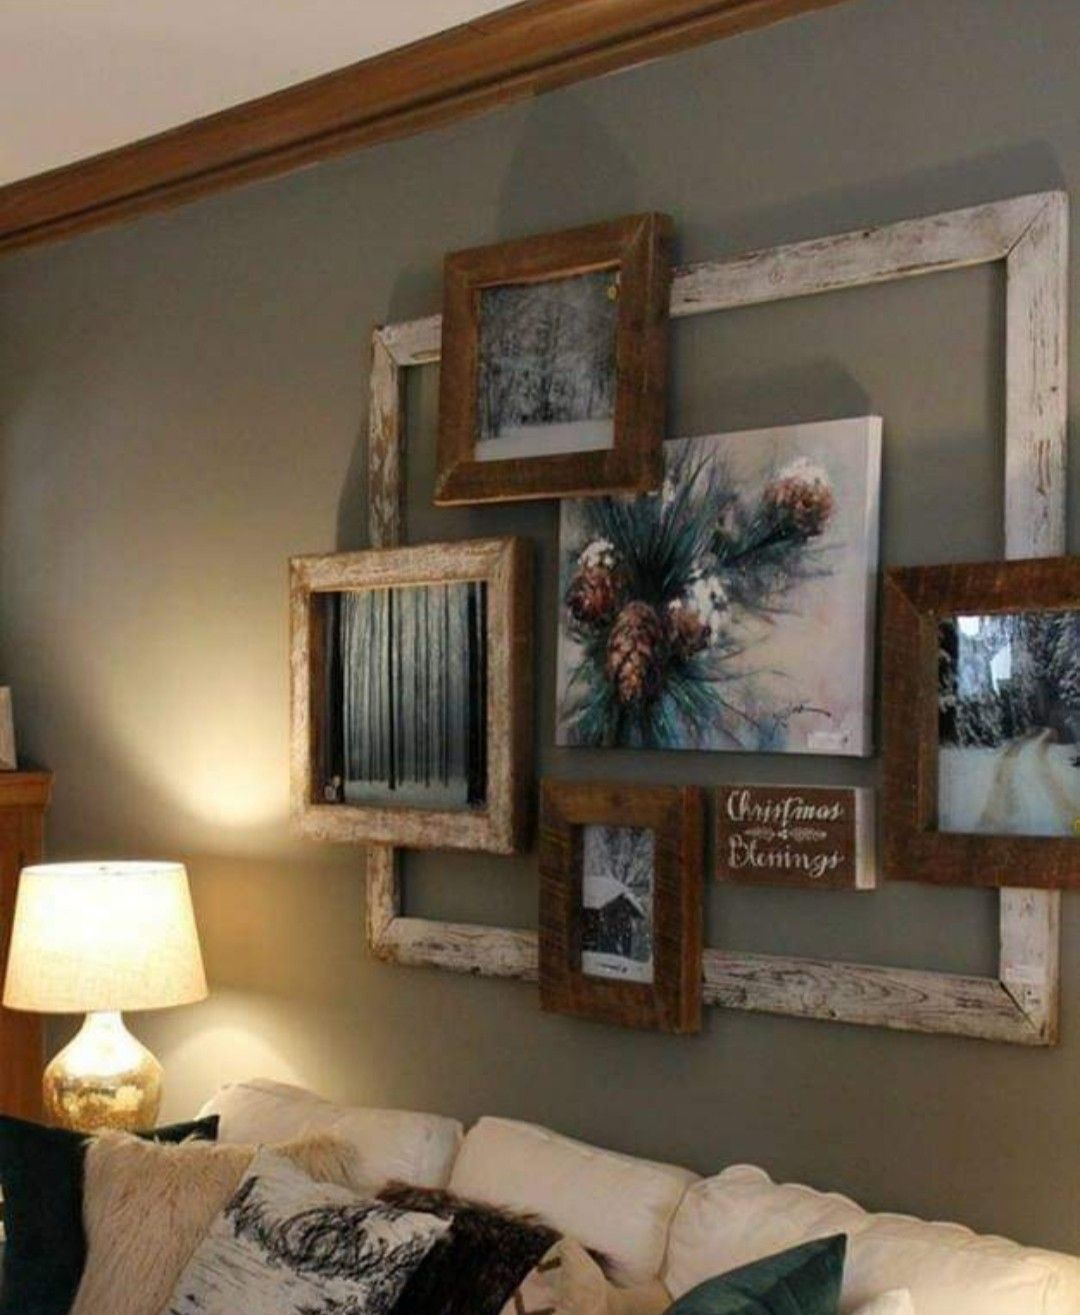 Base The Collage On The Season But Keep The Large Empty Frame For All Wall Decor Living Room Empty Frames Decor Decor